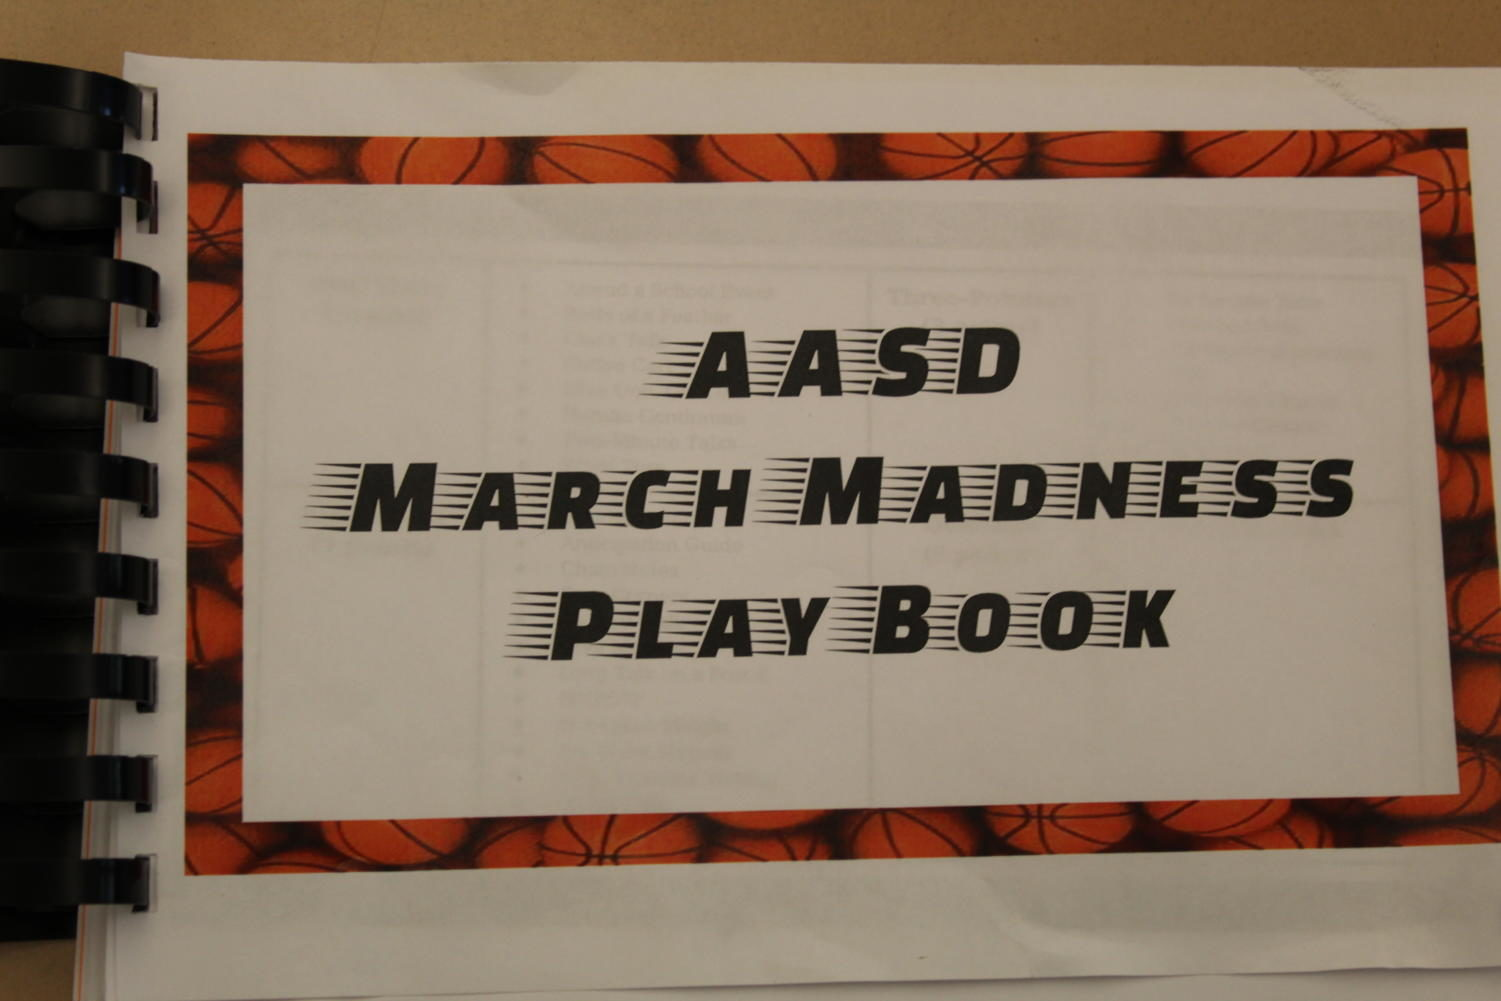 Persevere!  This March Madness competition is not  like normal basketball games which benefit the audience, now it benefits the students.  From March 4 to March 15, groups of teachers competed to make students' more engaged in class.